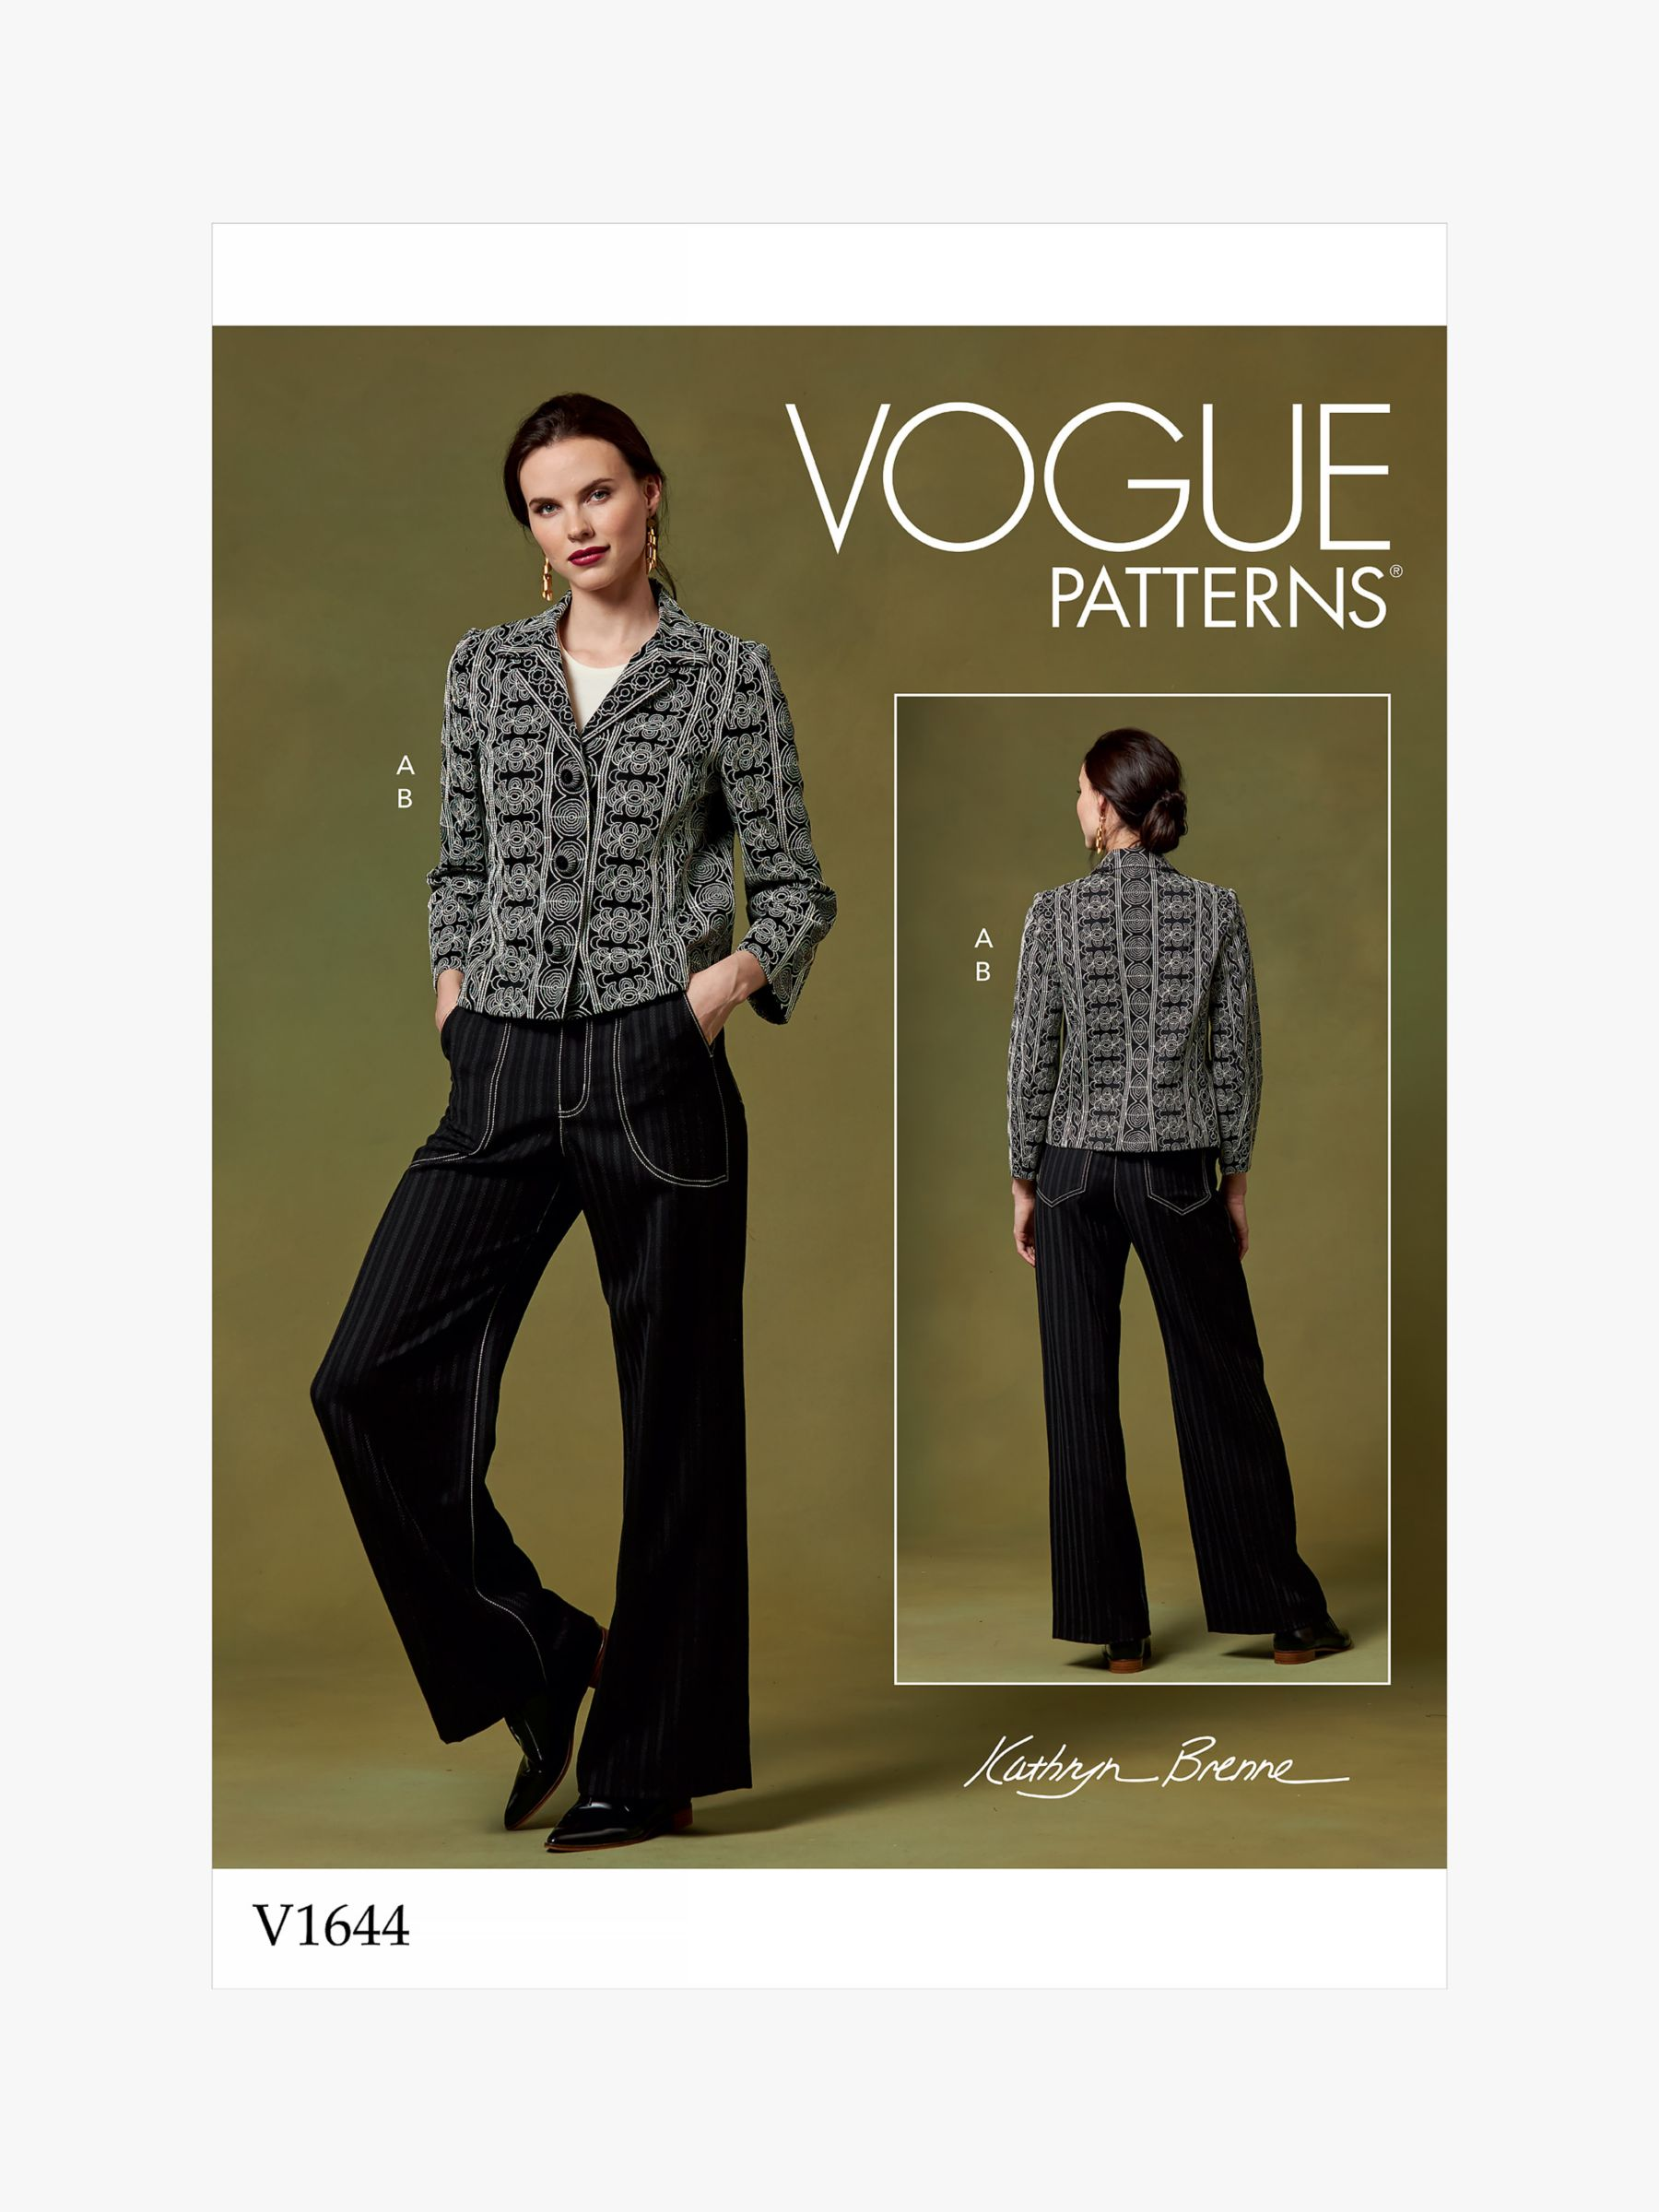 Vogue Vogue Women's Jacket and Flared Trousers Sewing Pattern, 1644